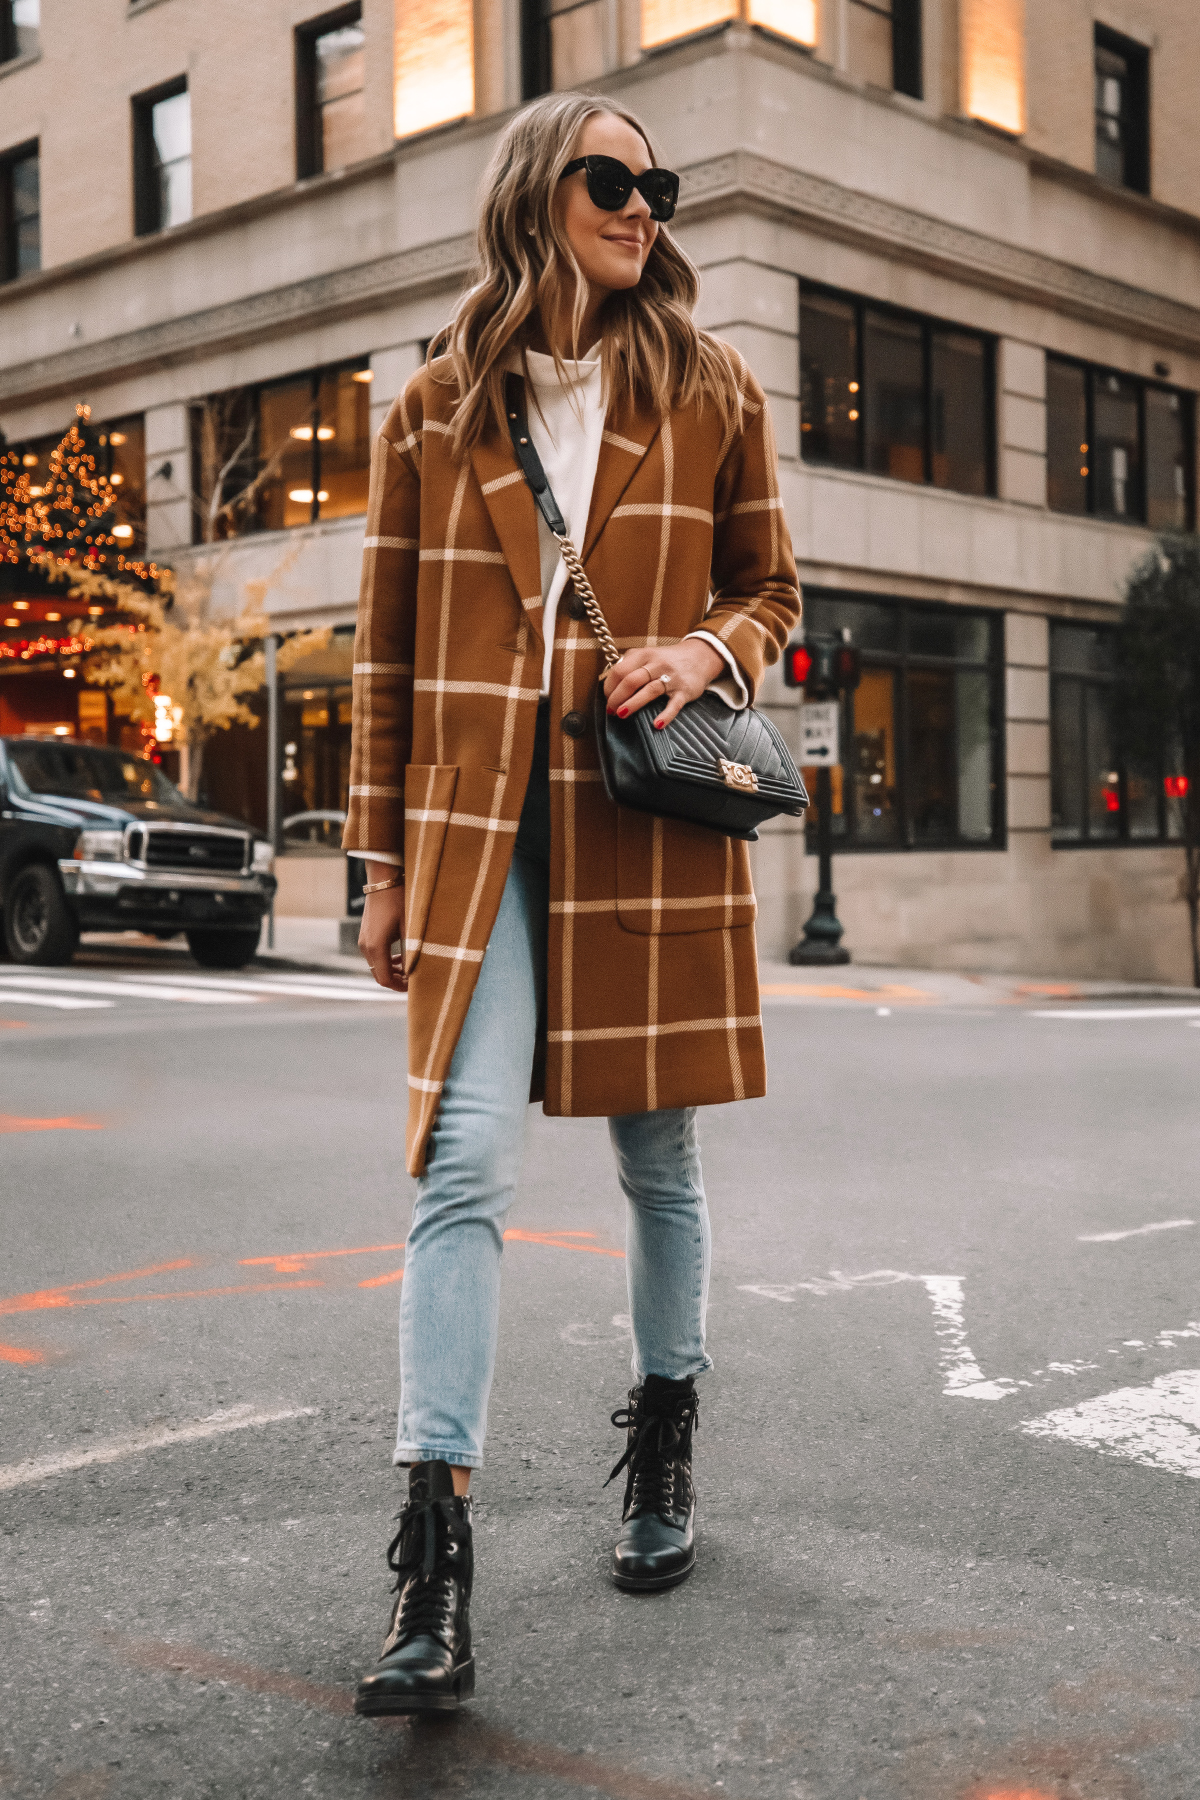 Fashion Jackson Madewell Camel Plaid Coat Levis Jeans Combat Boots Street Style Outfit